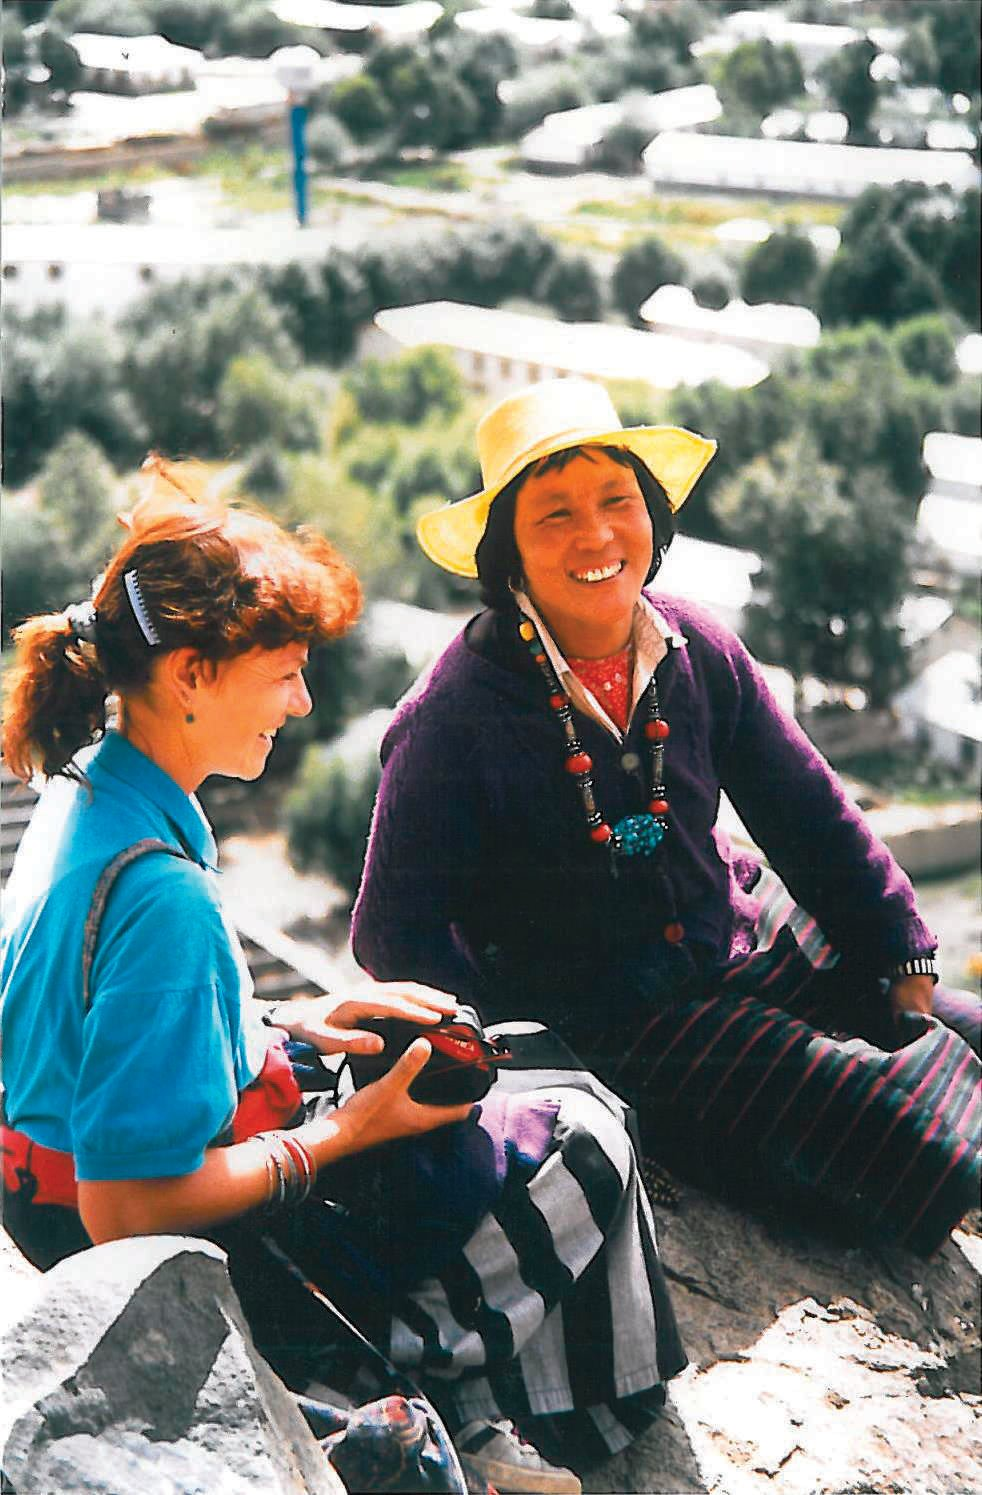 Valerie Parkinson in Tibet, 1989